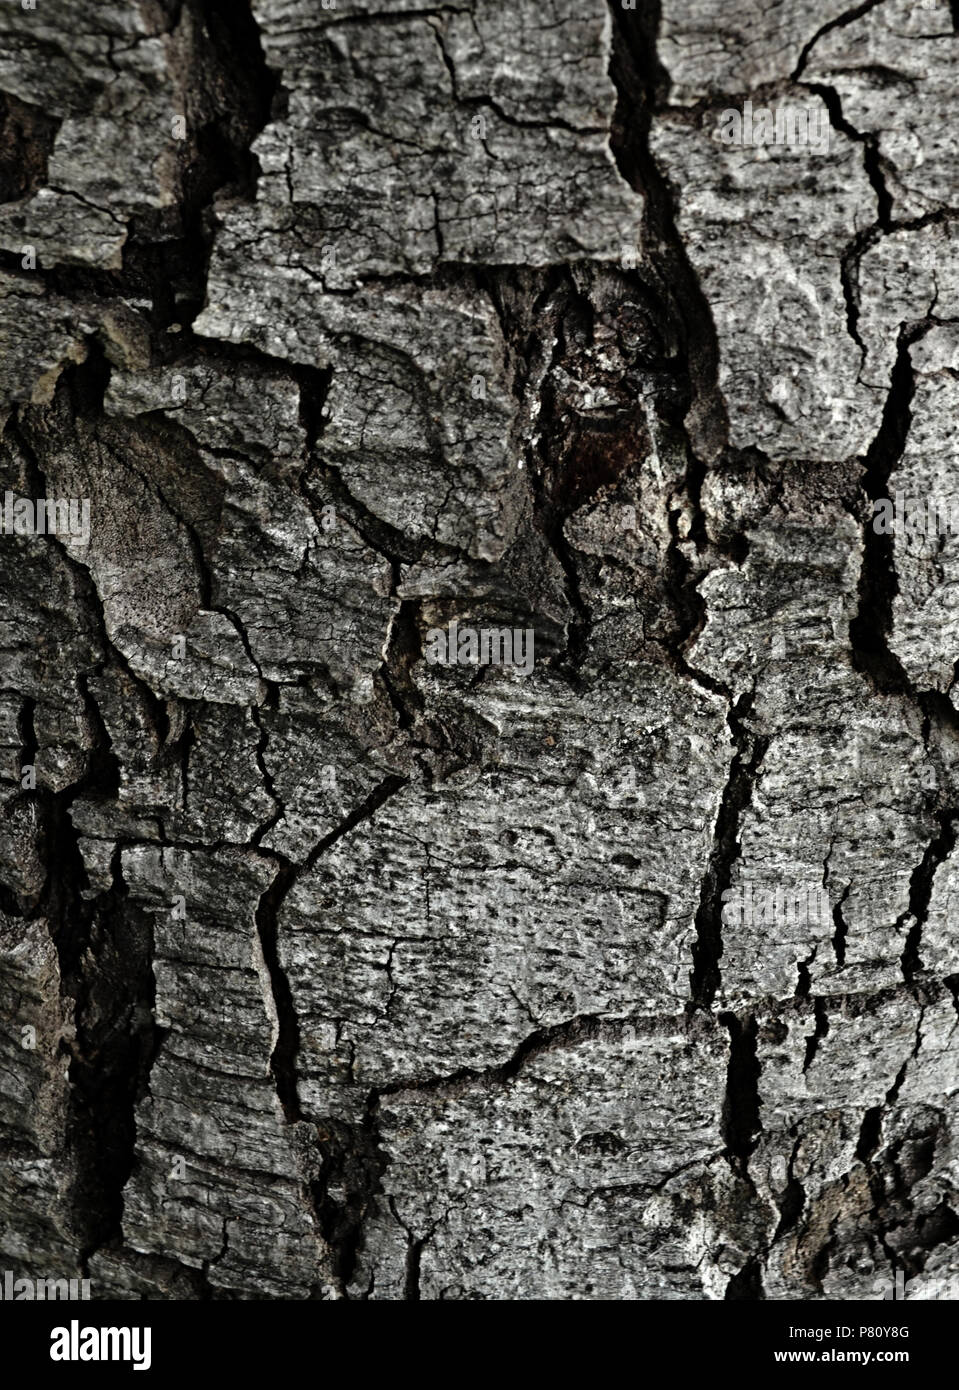 Bark surface of dead tree in nature - Stock Image